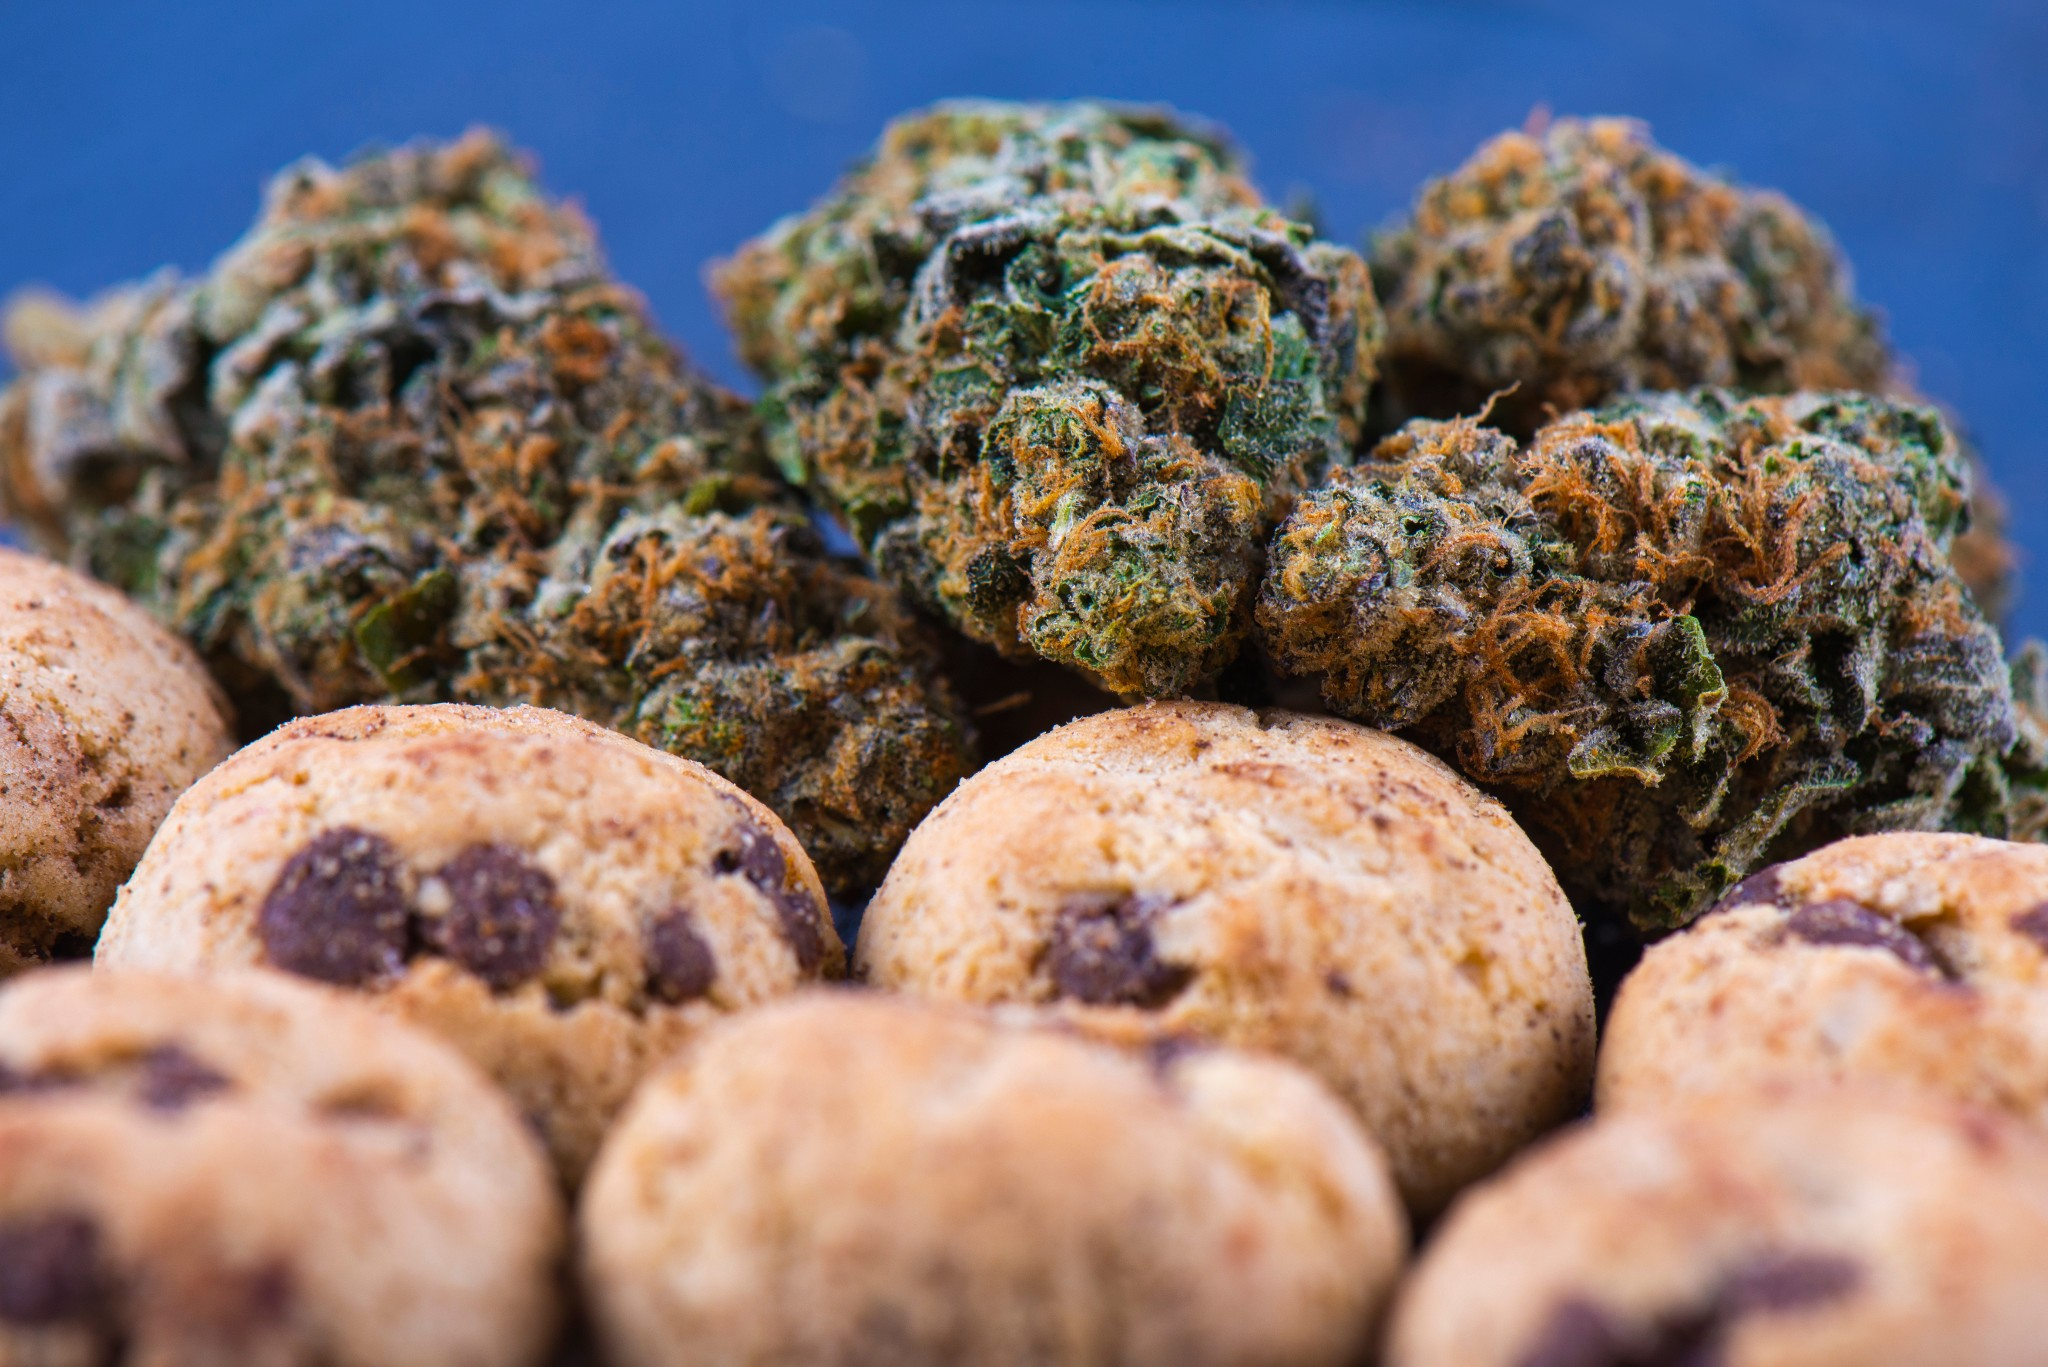 There's a Way to Legally Serve Cannabis in Restaurants, But It's Not Easy